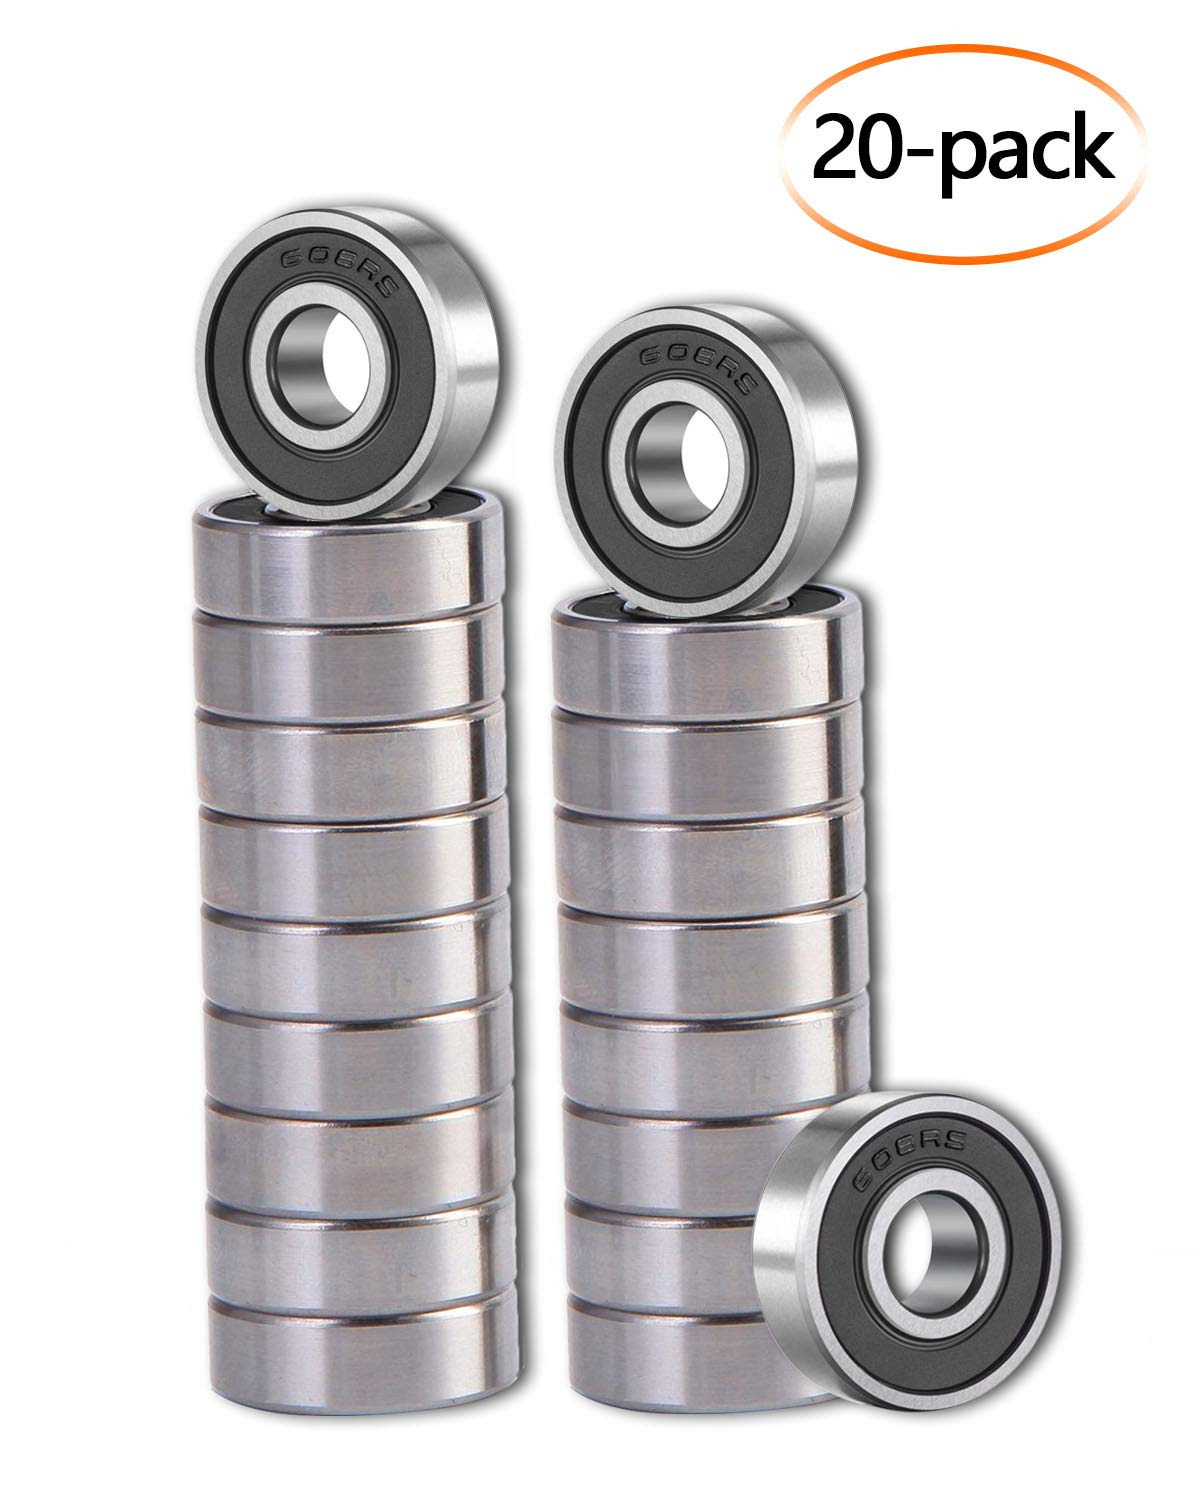 [20 Pack]608-2RS Ball Bearings – Bearing Steel and Double Rubber Sealed Miniature Deep Groove Ball Bearings for Skateboards, Inline Skates, Scooters (8mm x 22mm x 7mm)